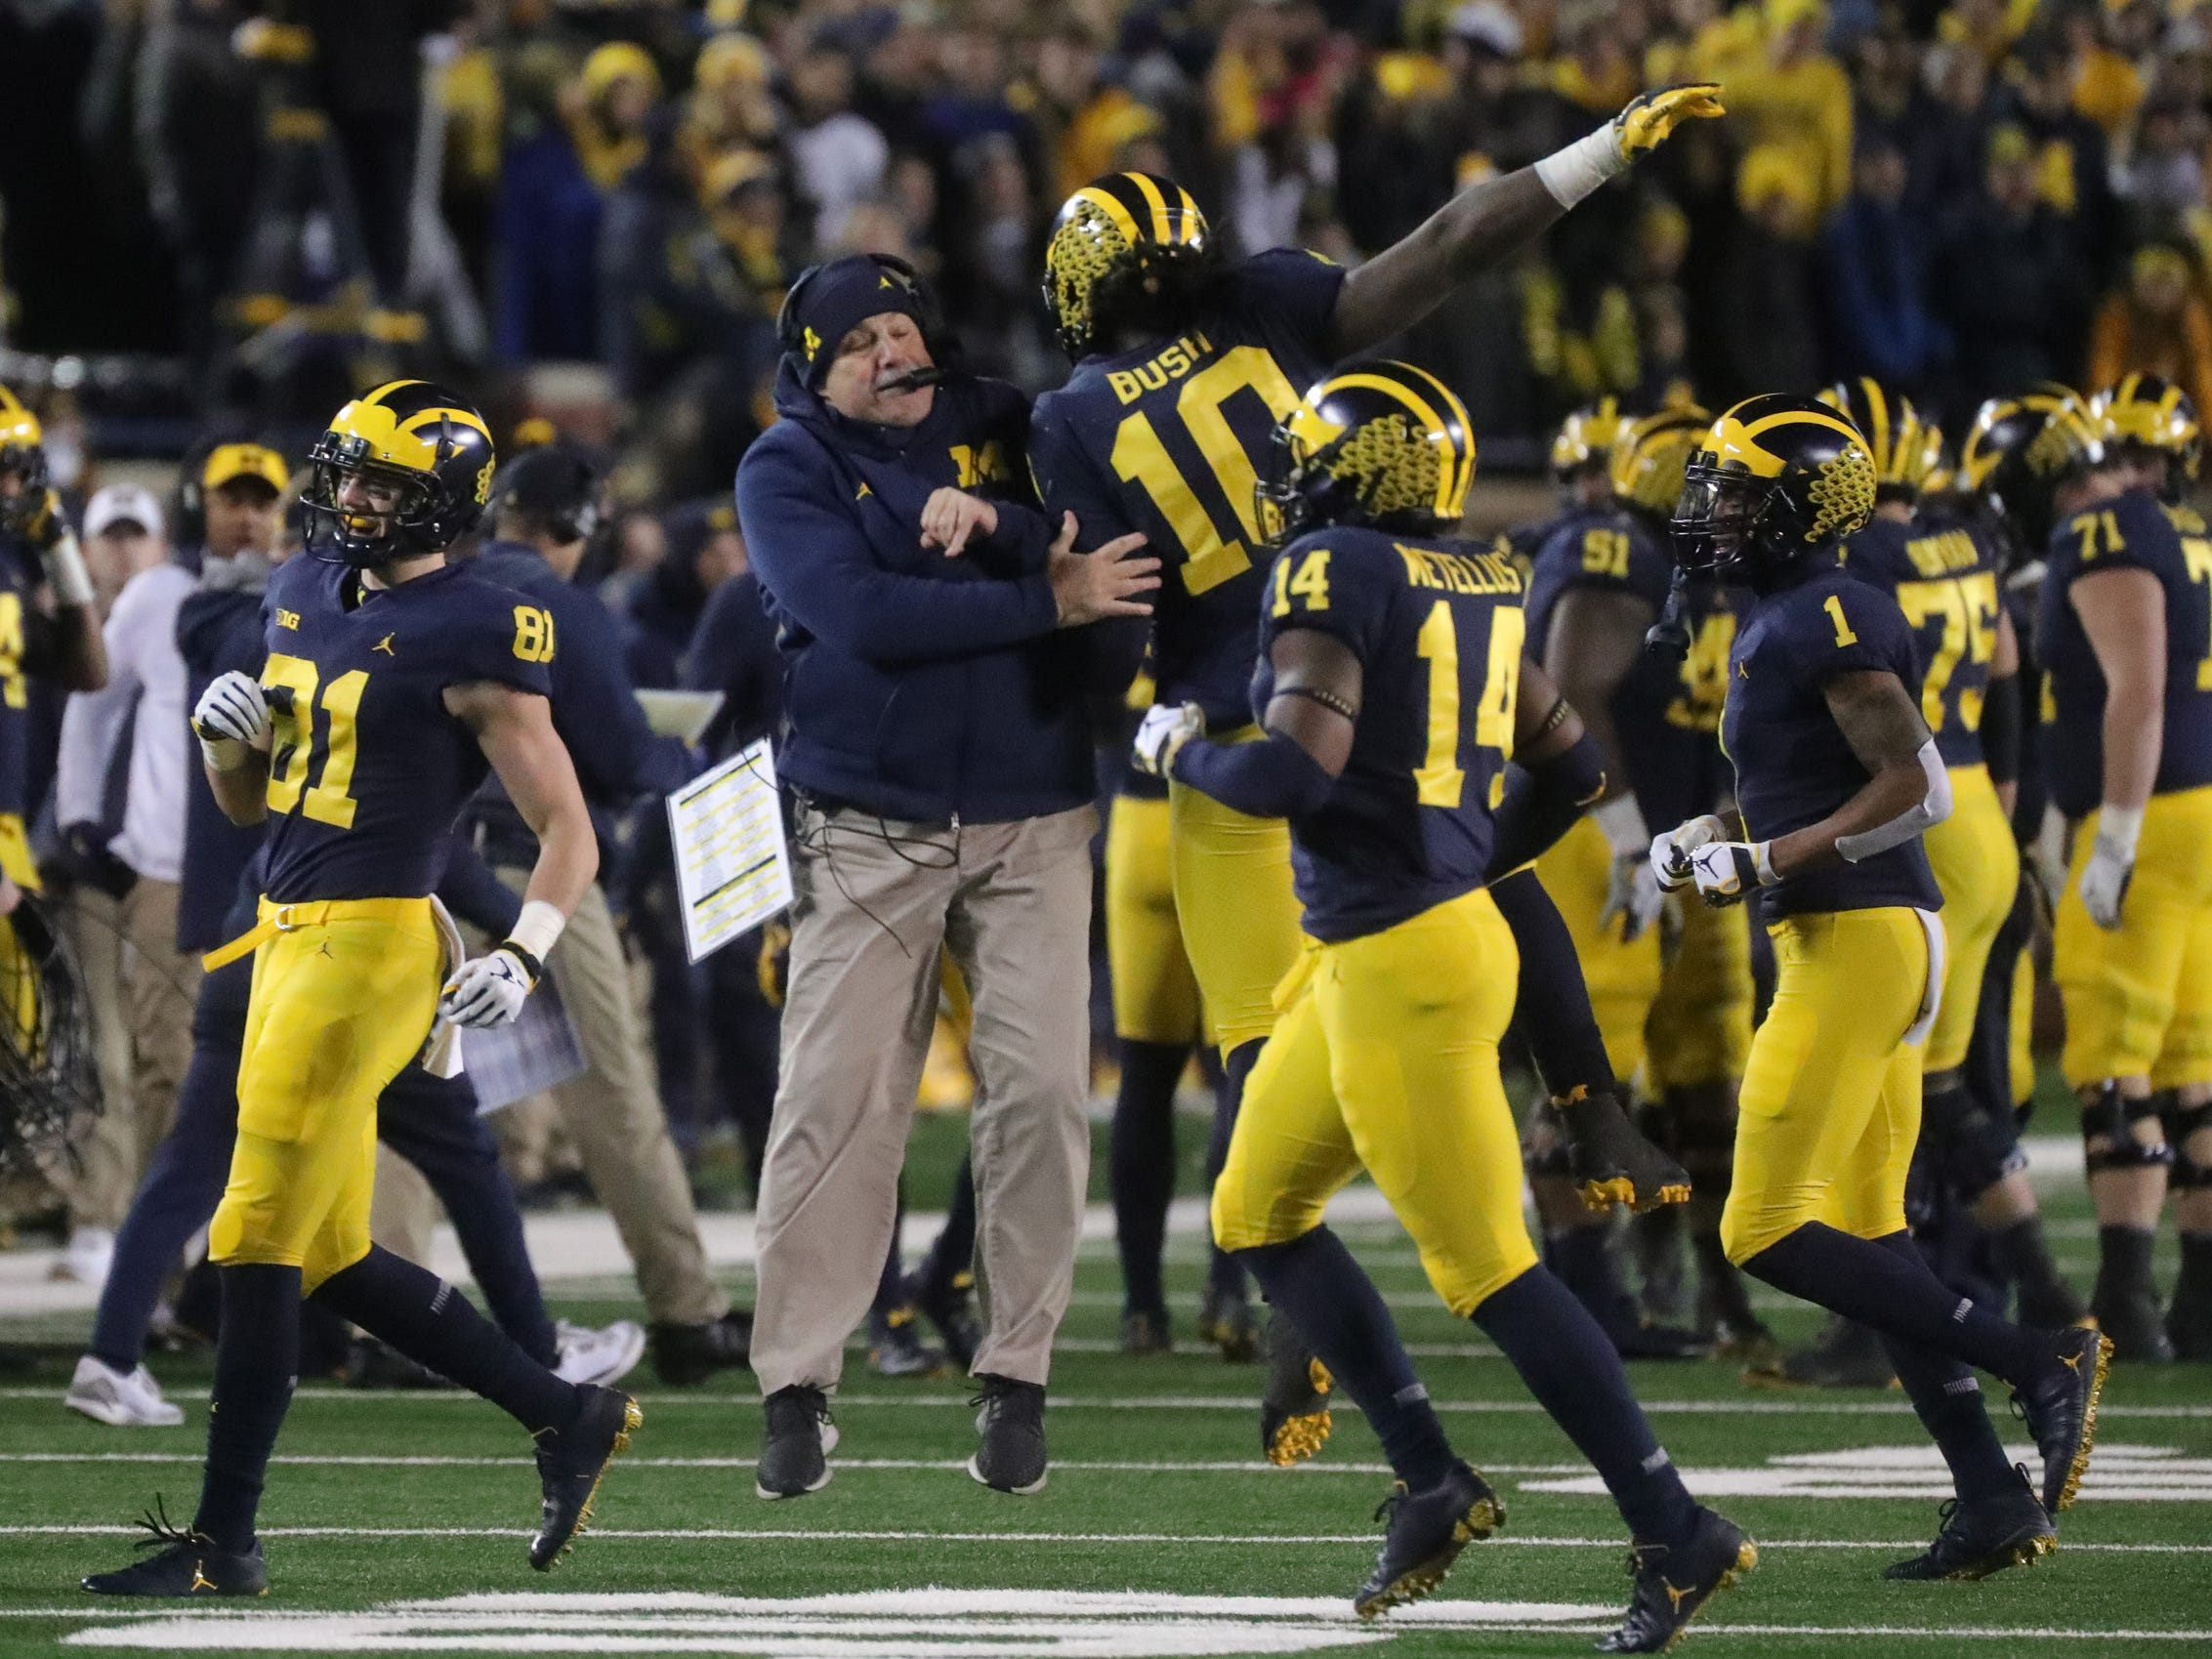 Michigan football and Ohio State both picked up wins heading into the season finale that will send the winner to the Big Ten championship game. But where are they ranked in the Free Press' top 25 poll headed in? Receiving votes this week: N.C. State, Iowa State and Cincinnati. Dropping out: Iowa State, UAB, Cincinnati and Boston College.